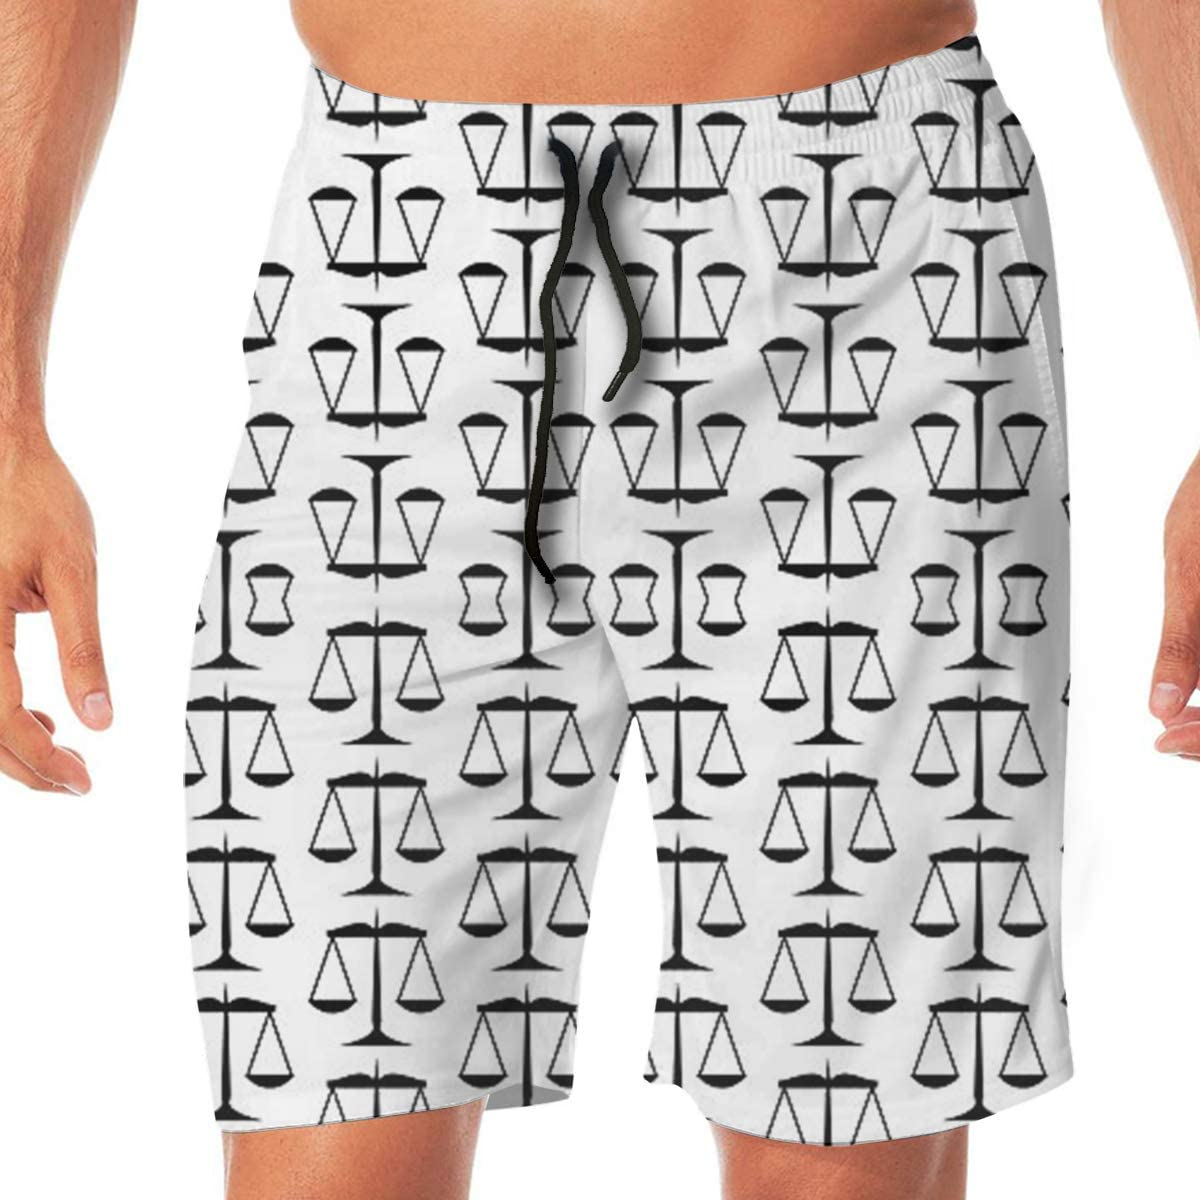 MaoYTUI Black Scales of Justice On White Mens Swim Trunks Boys Quick Dry Bathing Suits Drawstring Waist Beach Broad Shorts Swim Suit Beachwear with Mesh Lining